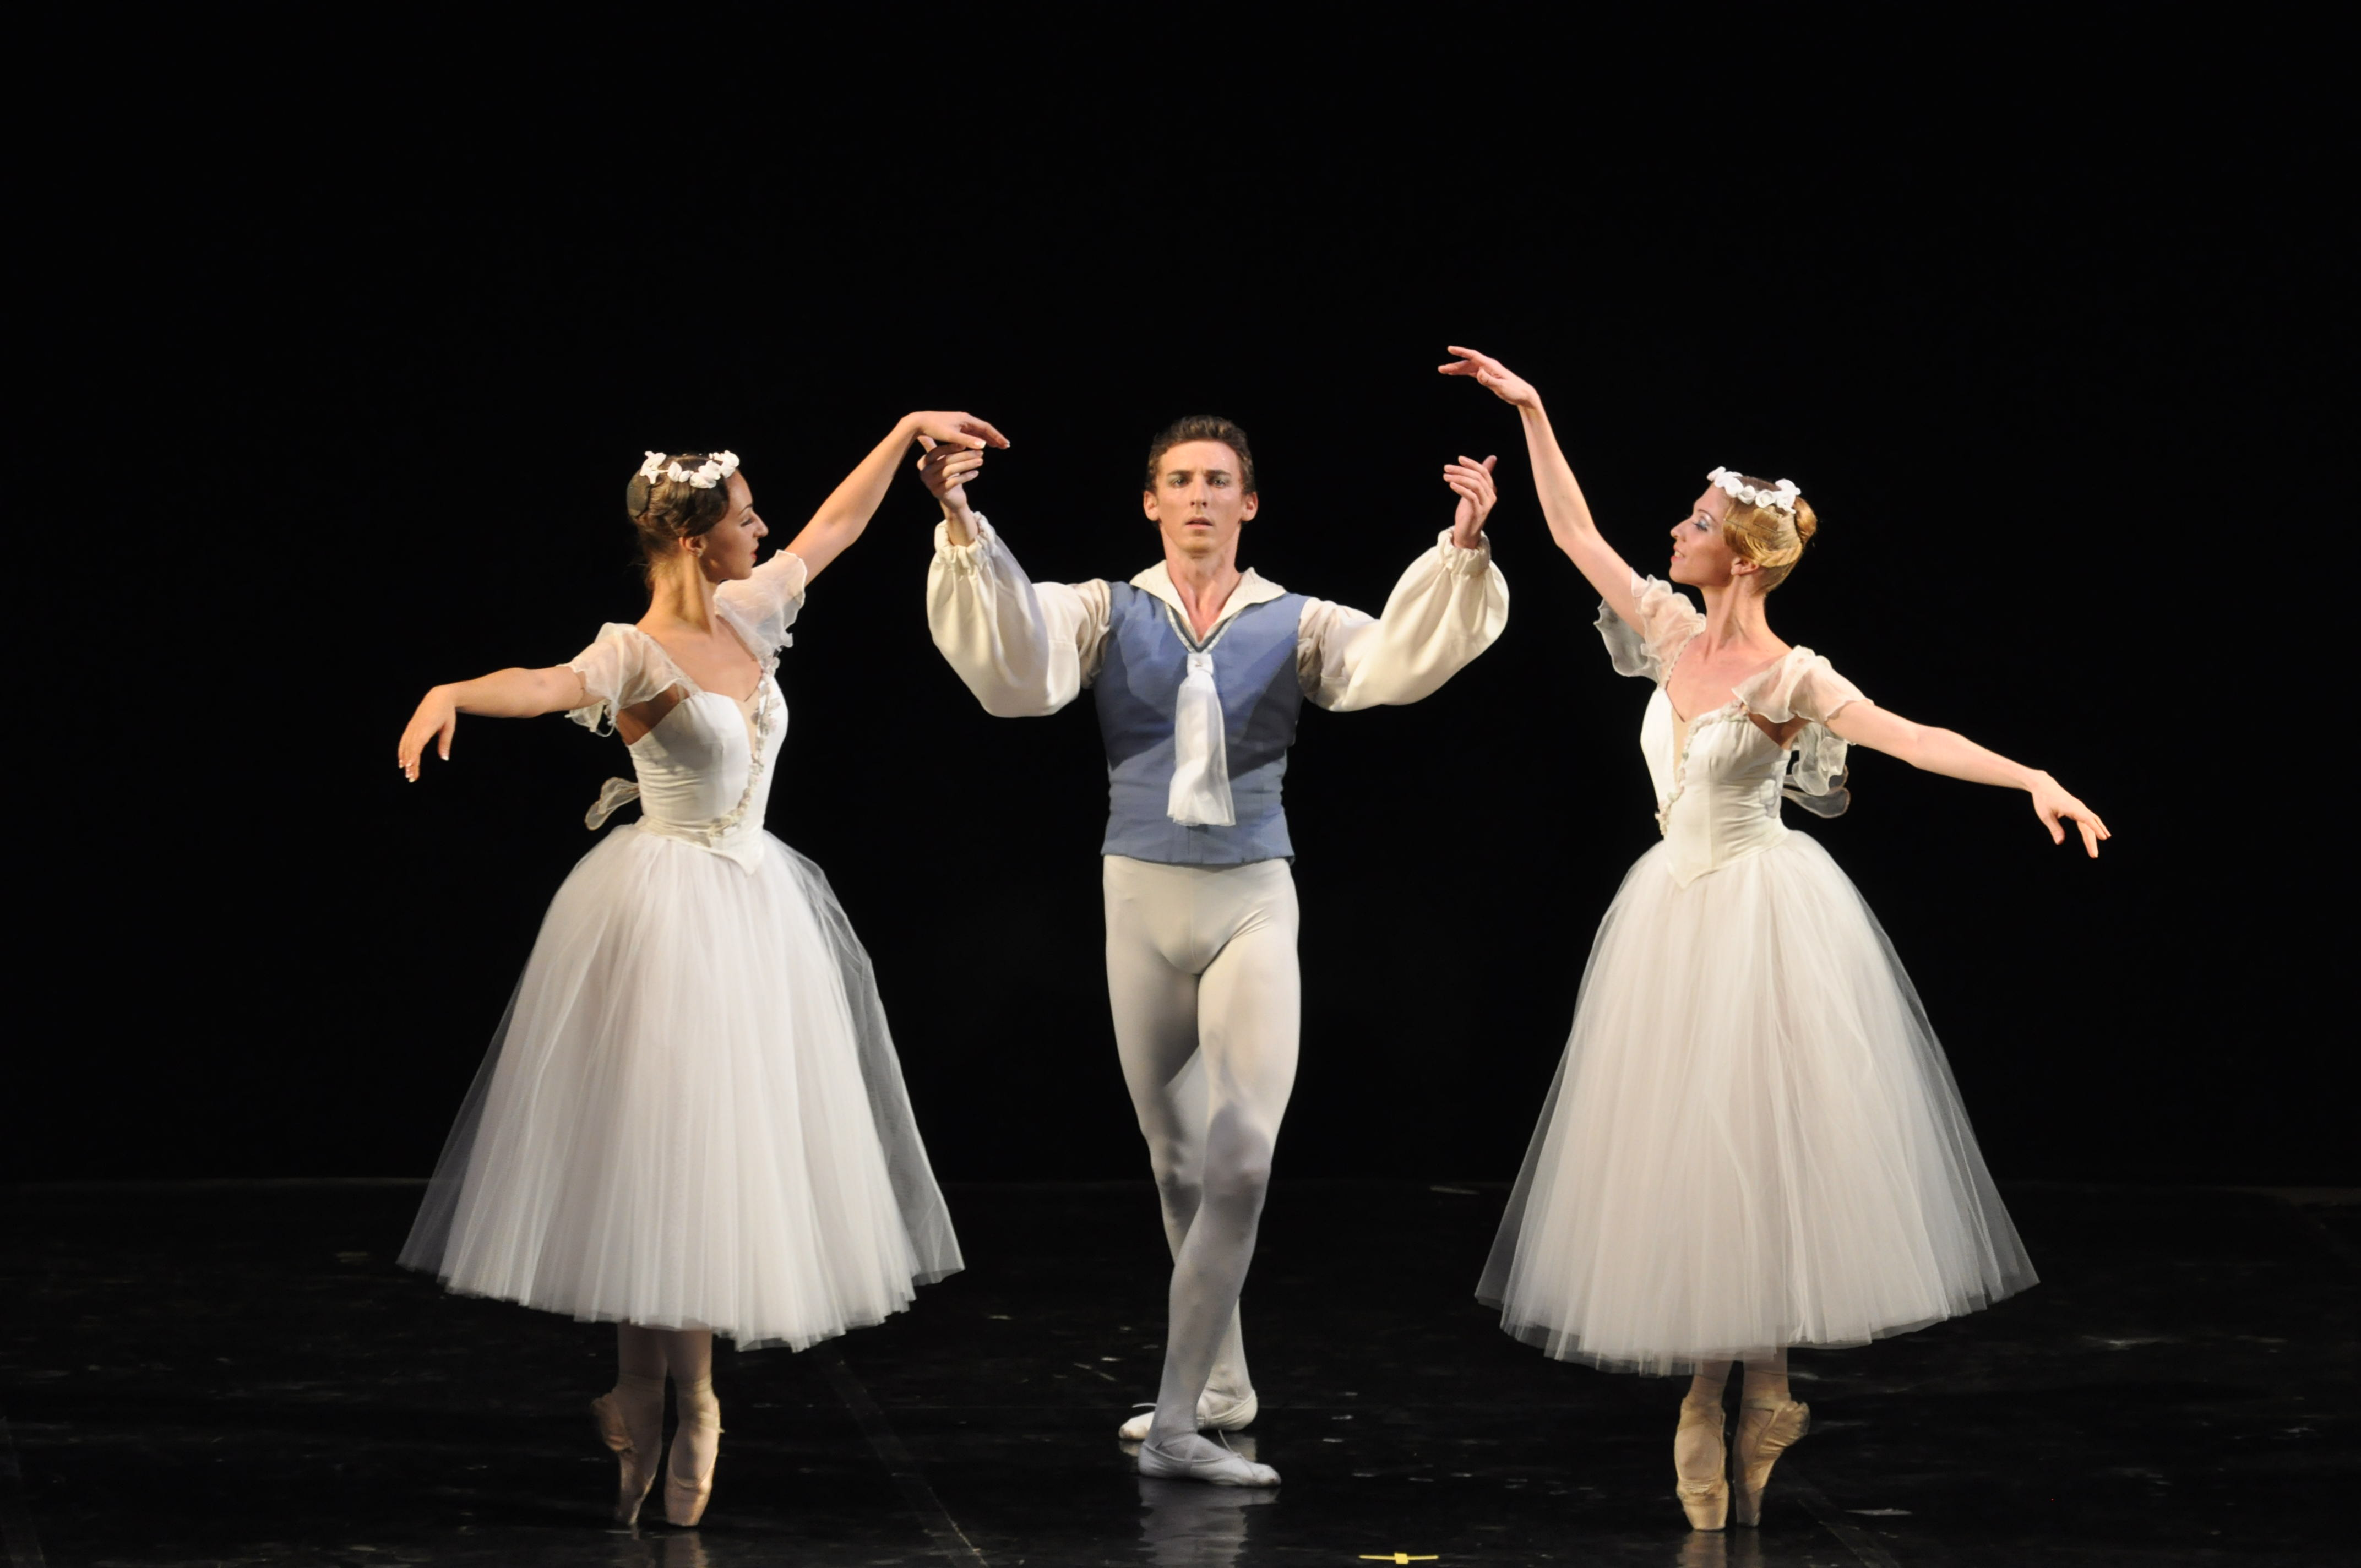 Stars-of-the-Russian-Ballet-Gala-19